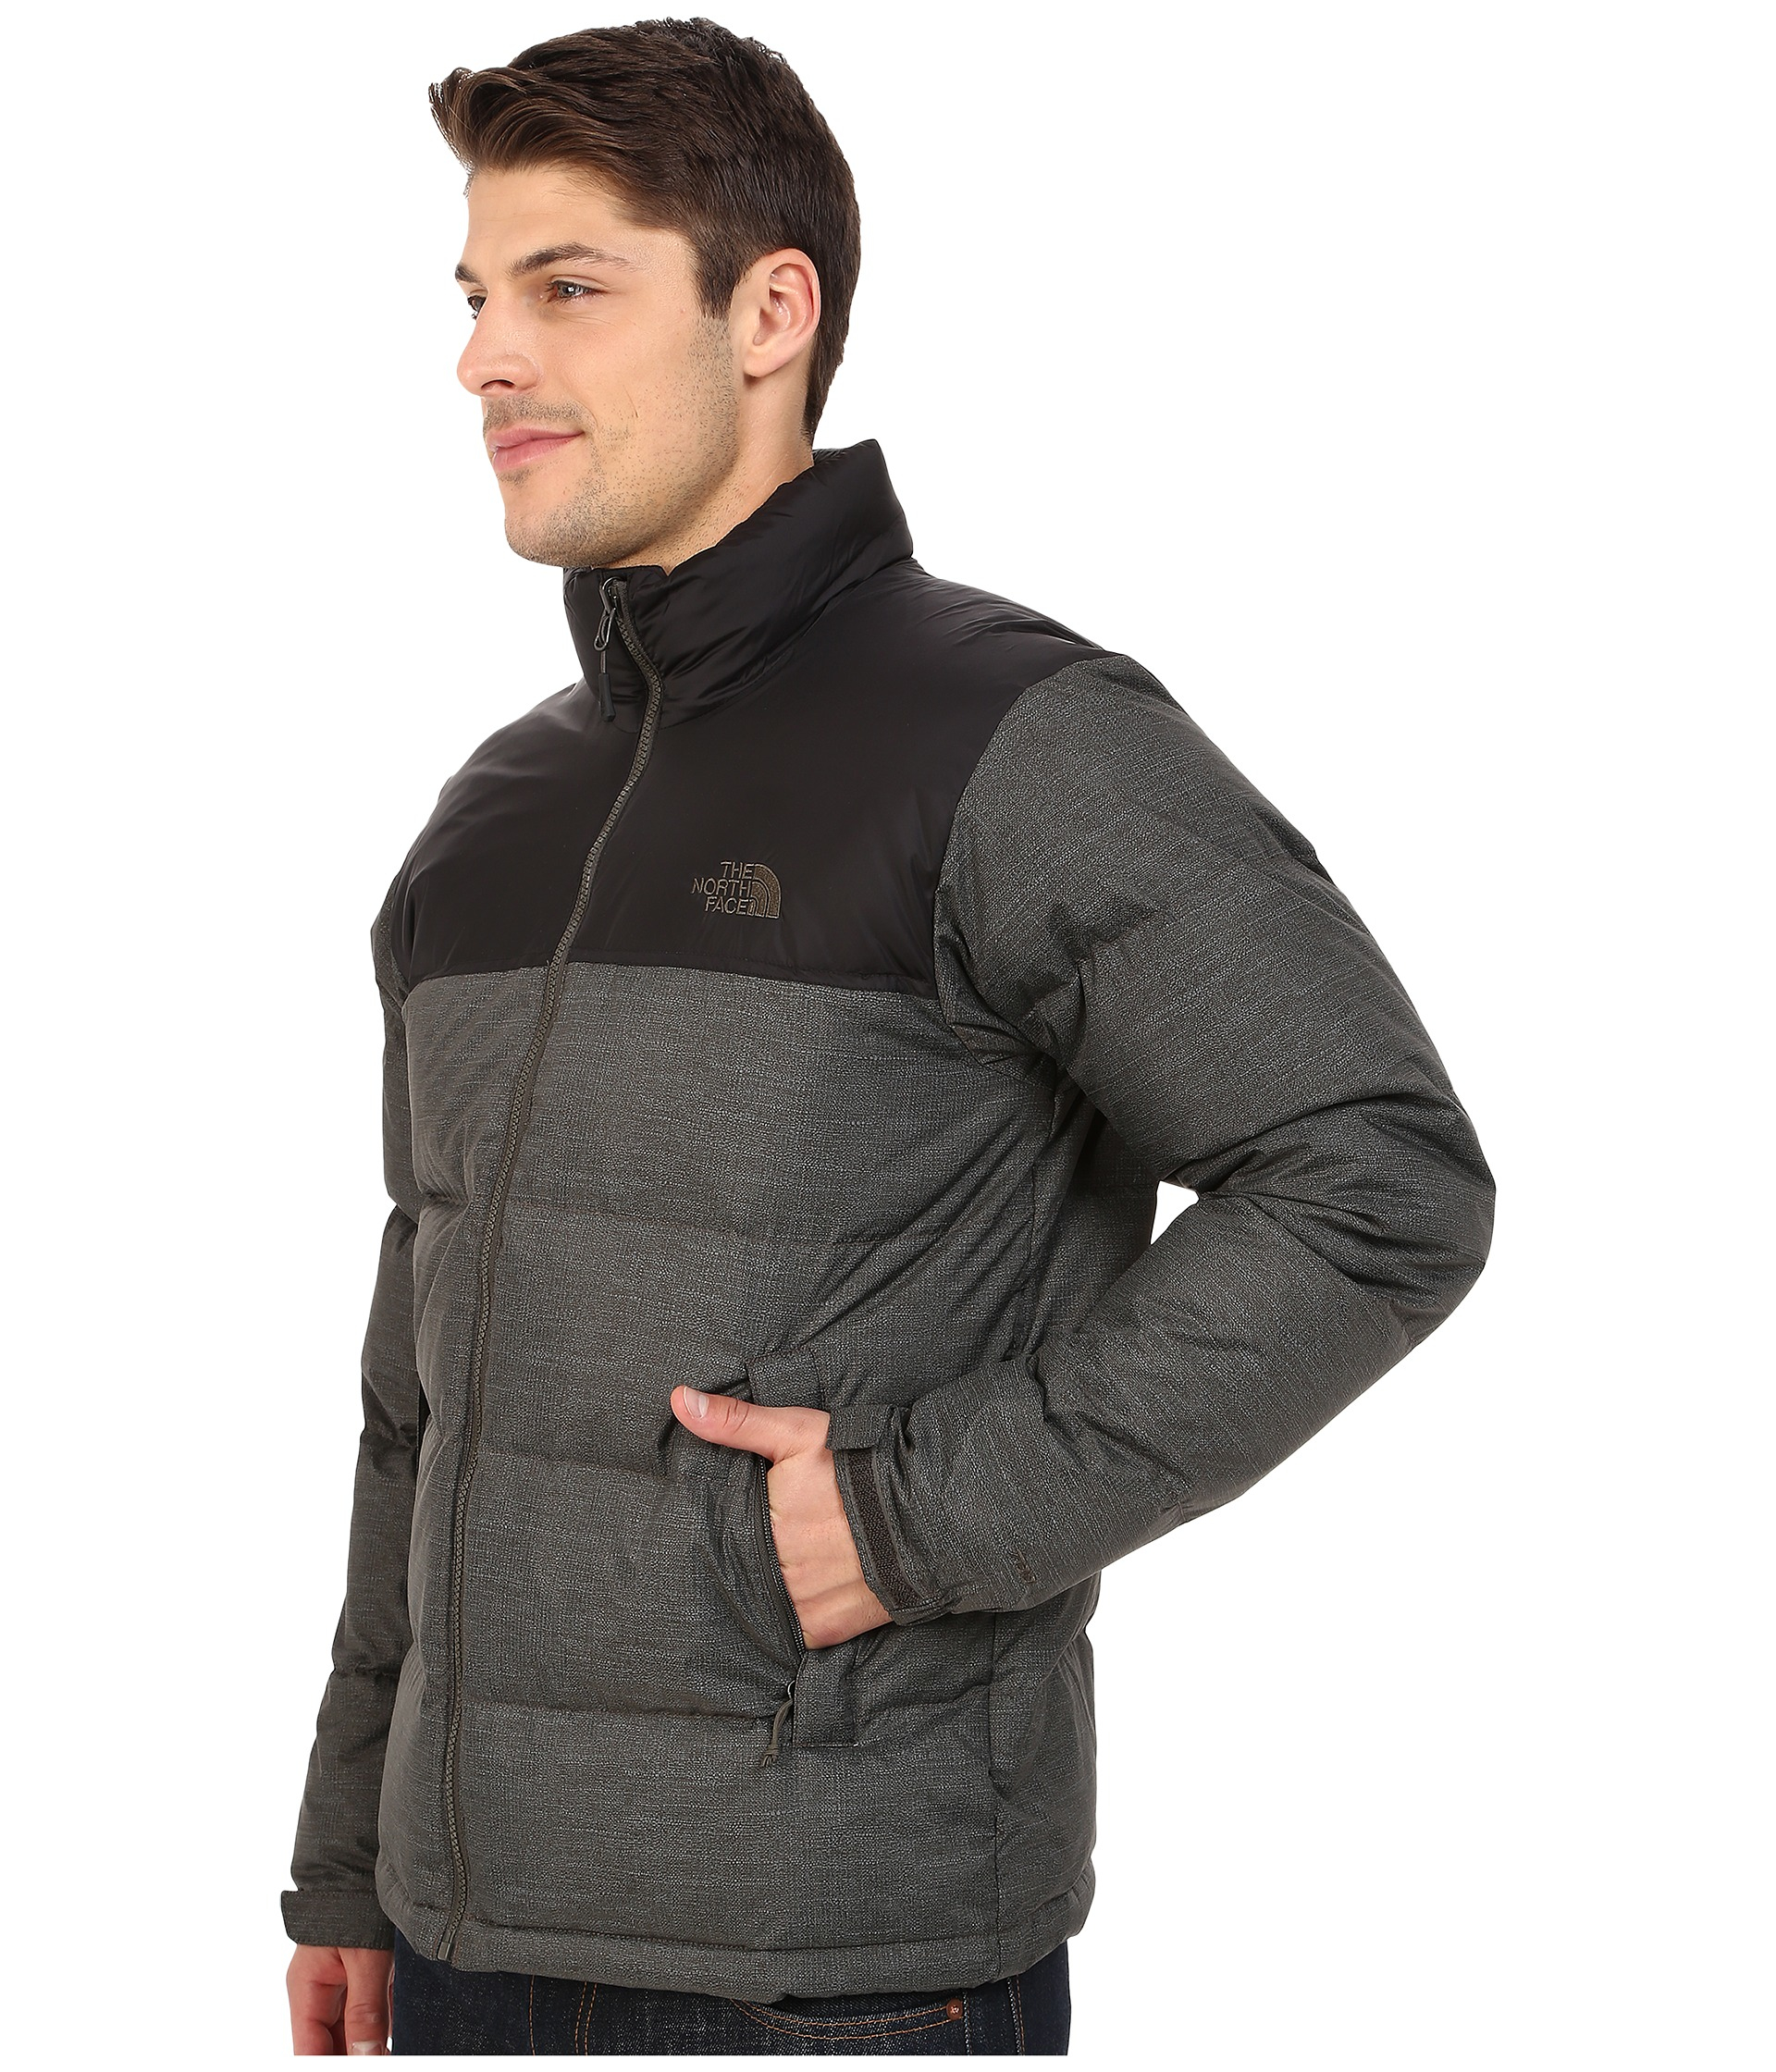 ... best price lyst the north face nuptse jacket in black for men 7a430  e3c43 c7e792617